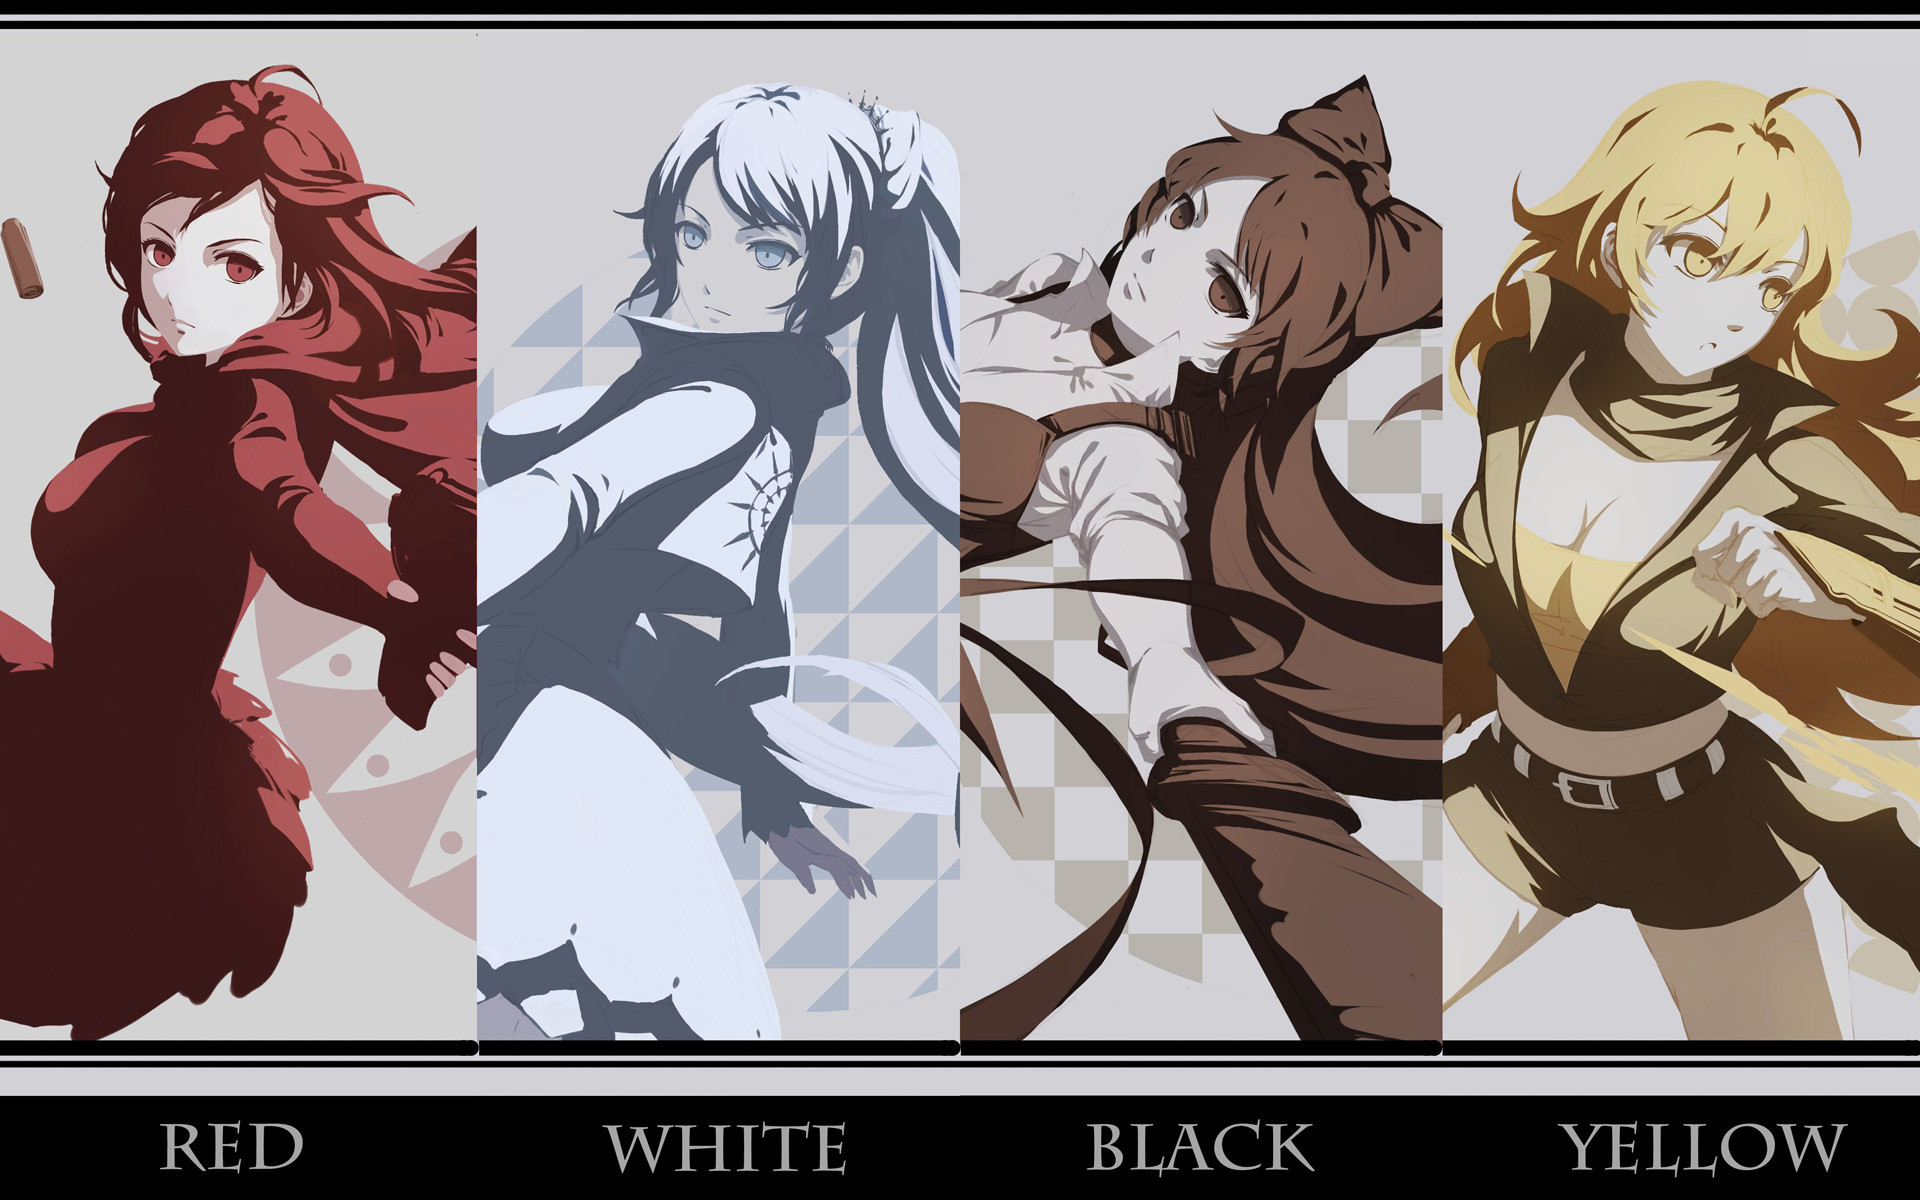 1920x1200 Anime RWBY Ruby Rose Weiss Schnee Blake Belladonna Yang Xiao Long Wallpaper